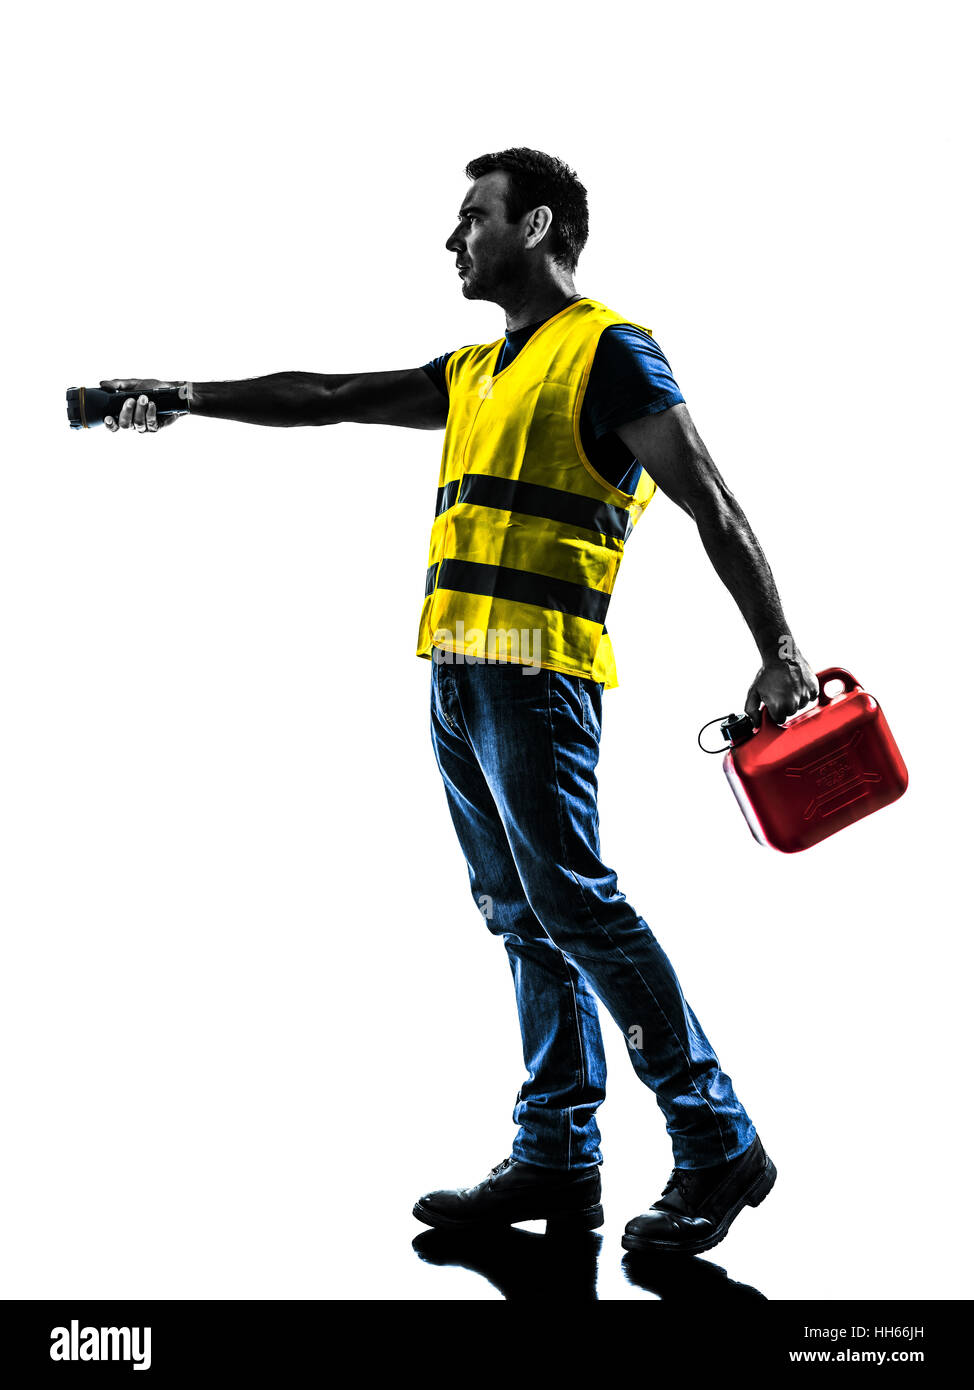 one man out of gas walking with safety vest and gasoline can silhouette isolated in white background - Stock Image